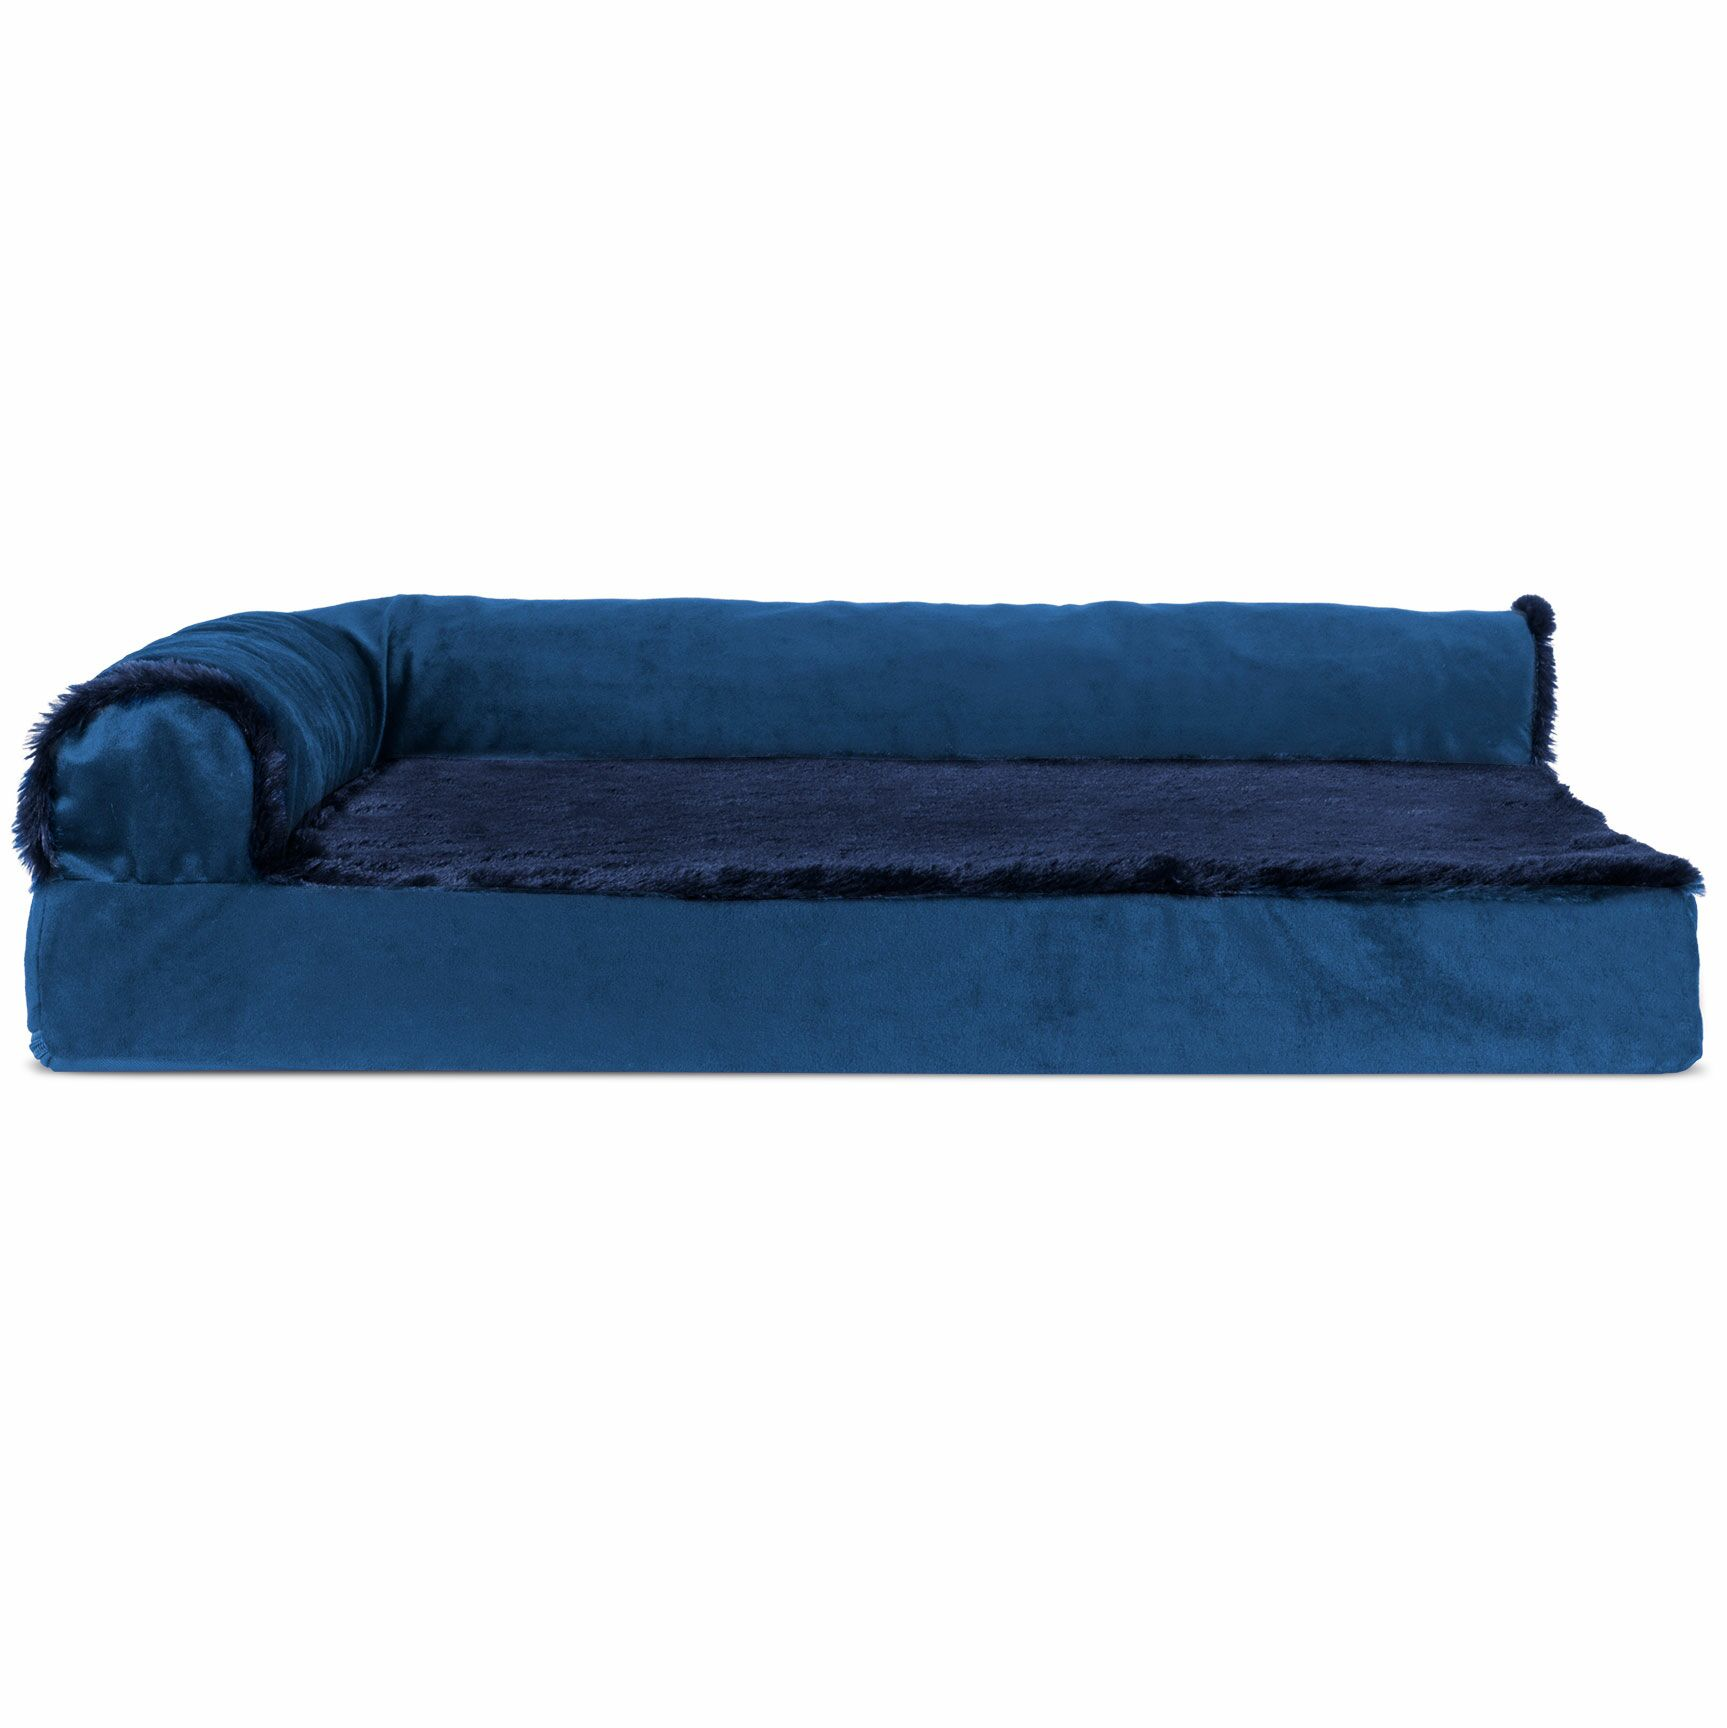 Arvizu Plush and Velvet Deluxe Orthopedic Bolster Color: Deep Sapphire, Size: Extra Large (44